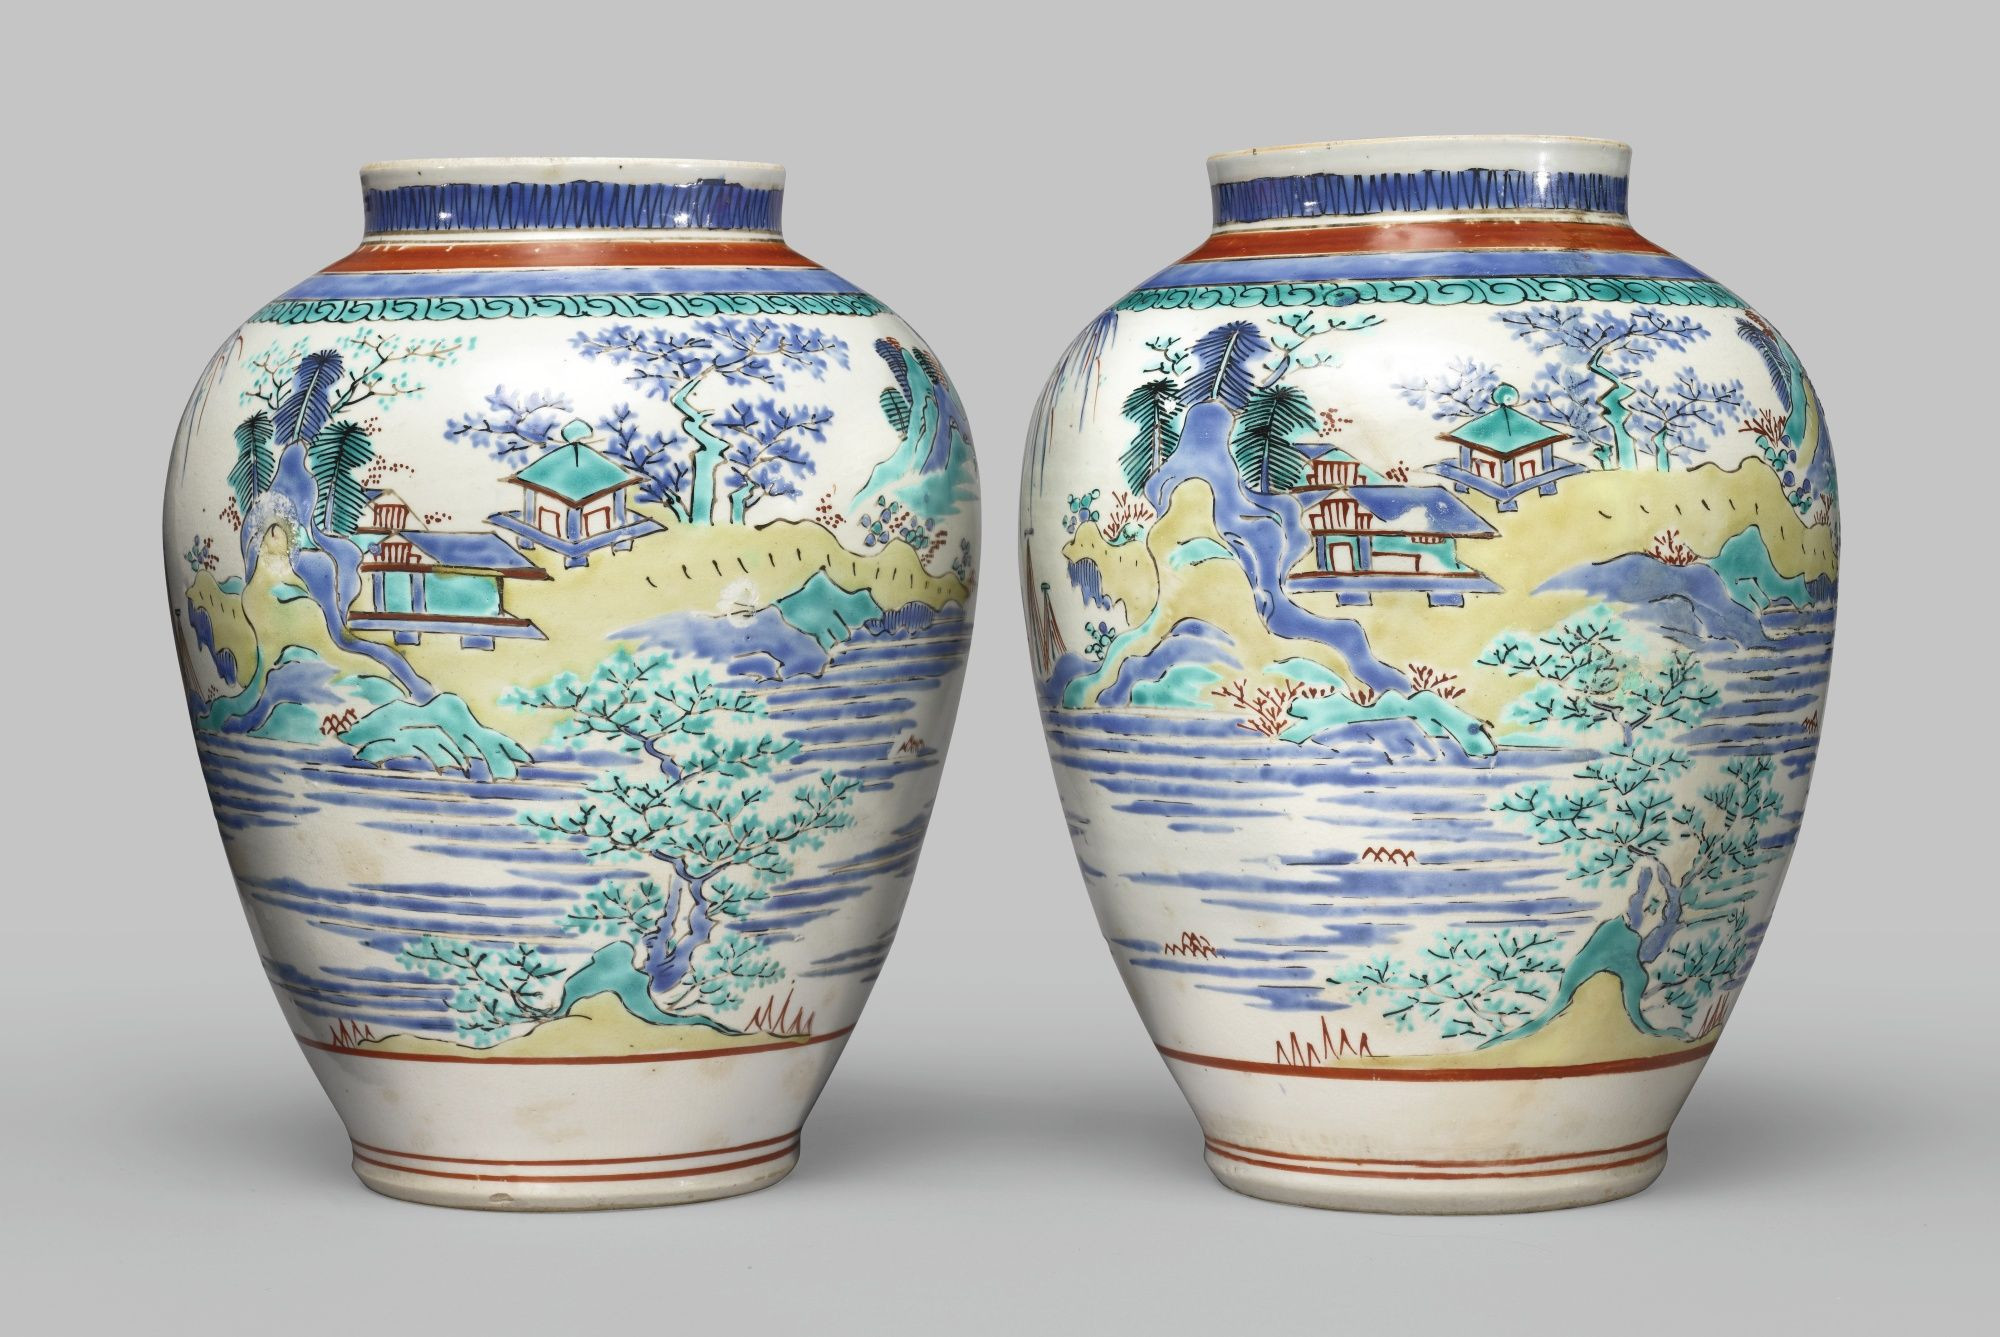 vintage japanese vase markings of a pair of large kakiemon vases japan late 17th century each of for a pair of large kakiemon vases japan late 17th century each of ovoid form decorated in overglazed blue green yellow and iron red depicting a